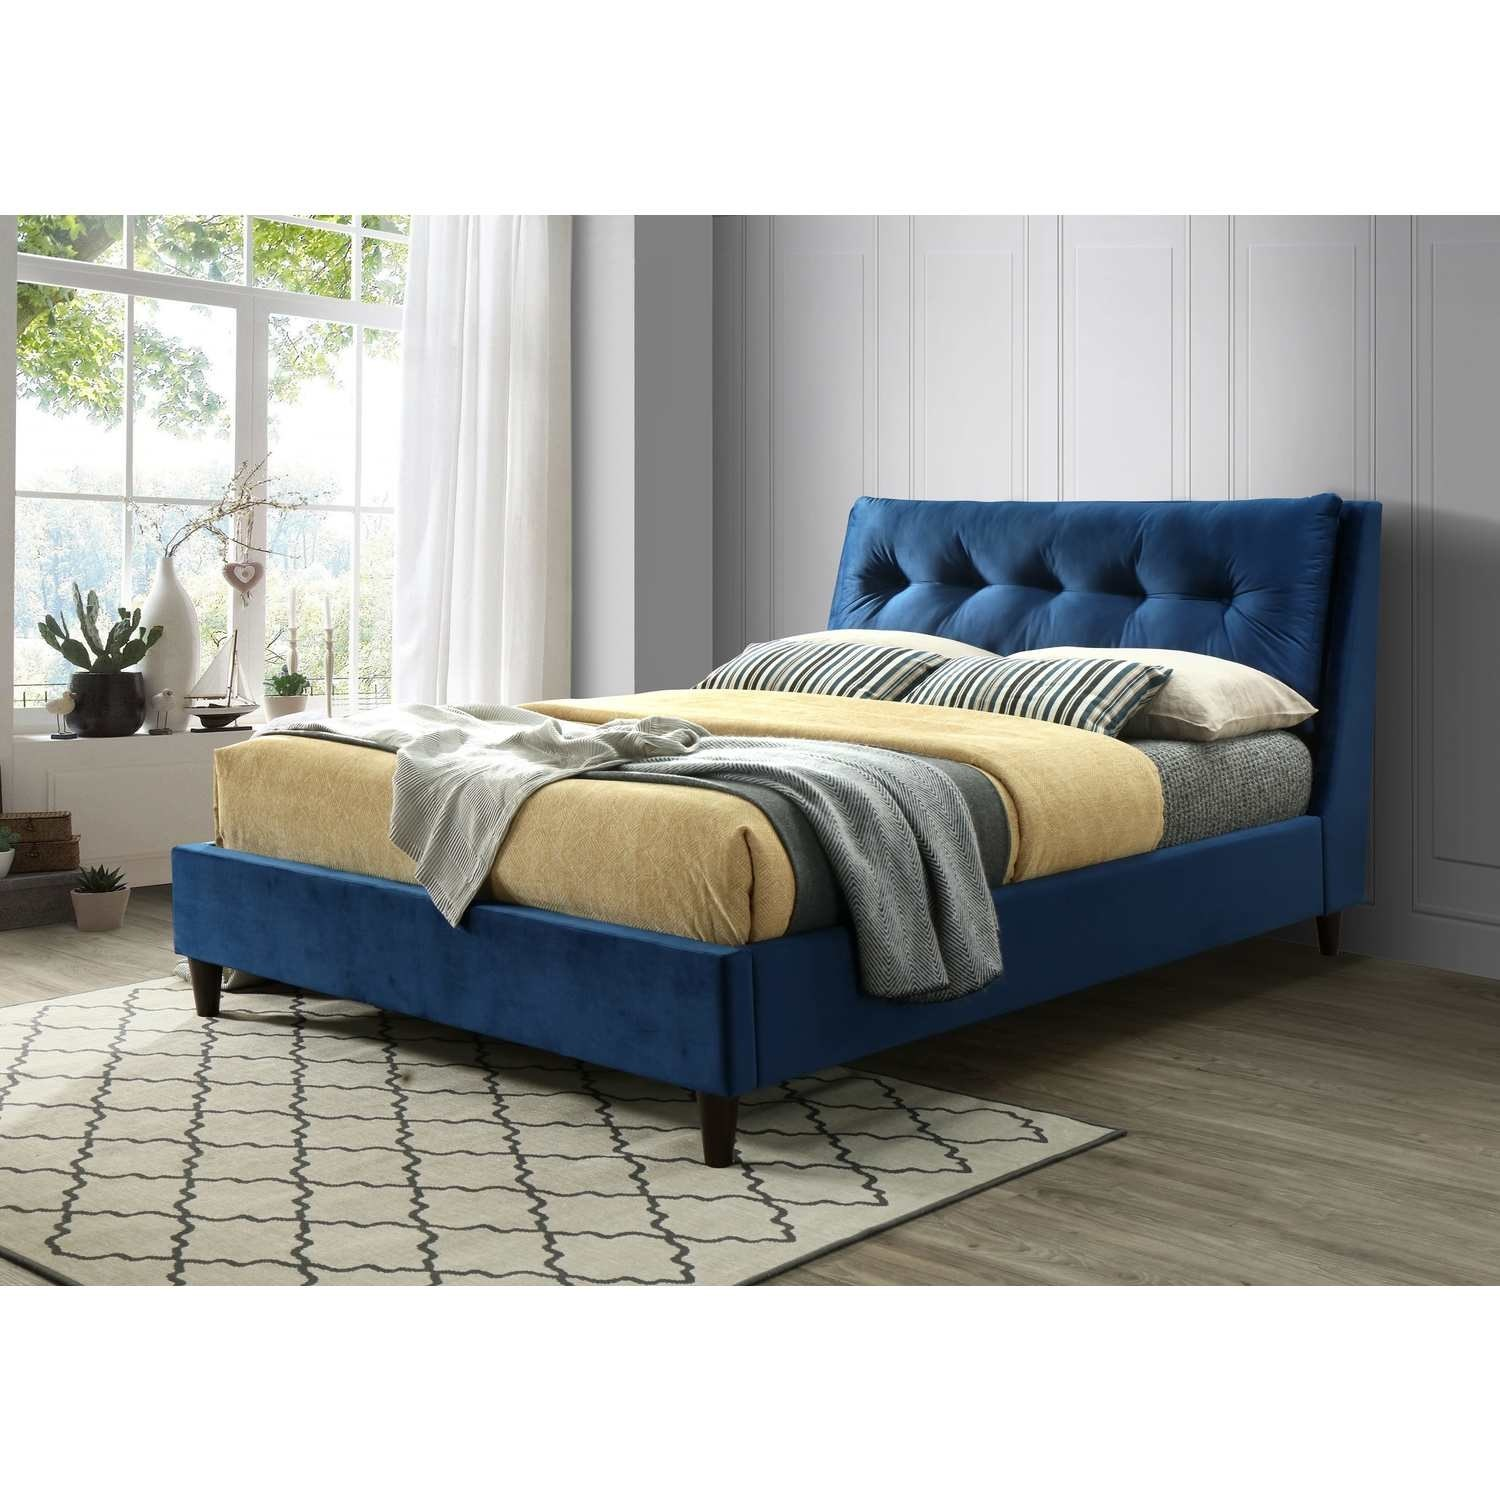 amaya buttoned pillow headboard double bed in blue